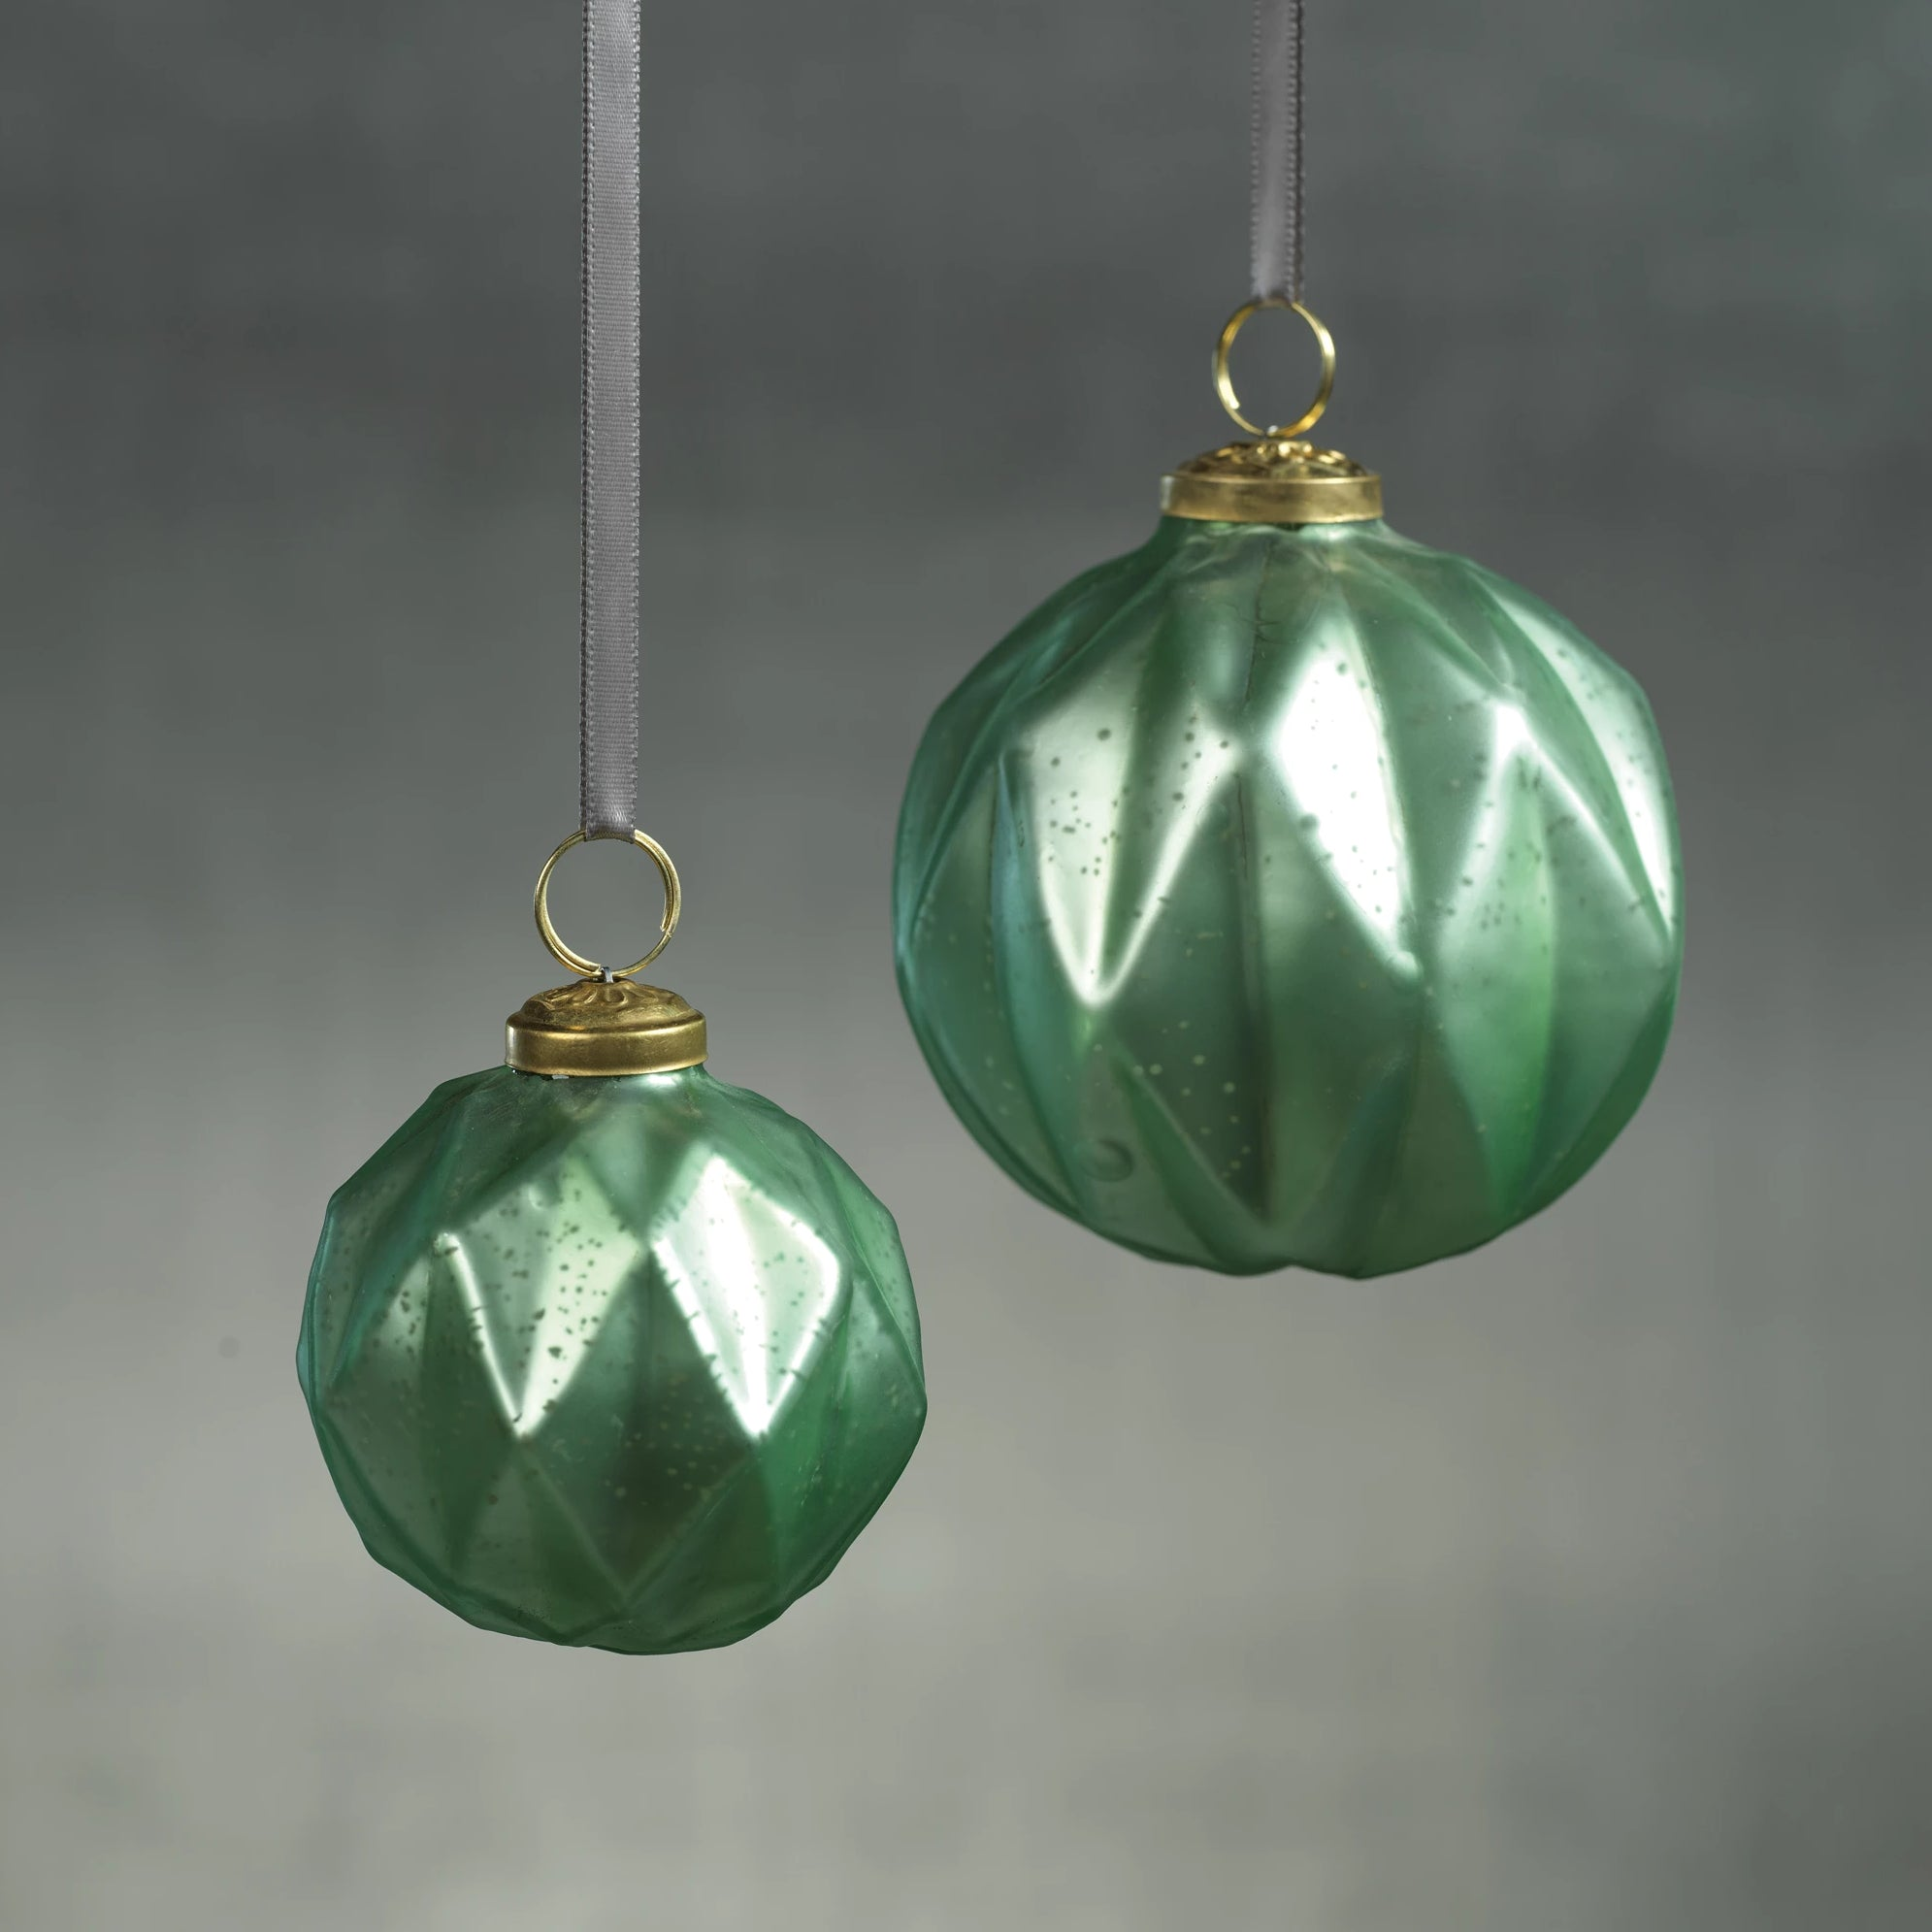 Faceted Glass Ornaments - Green